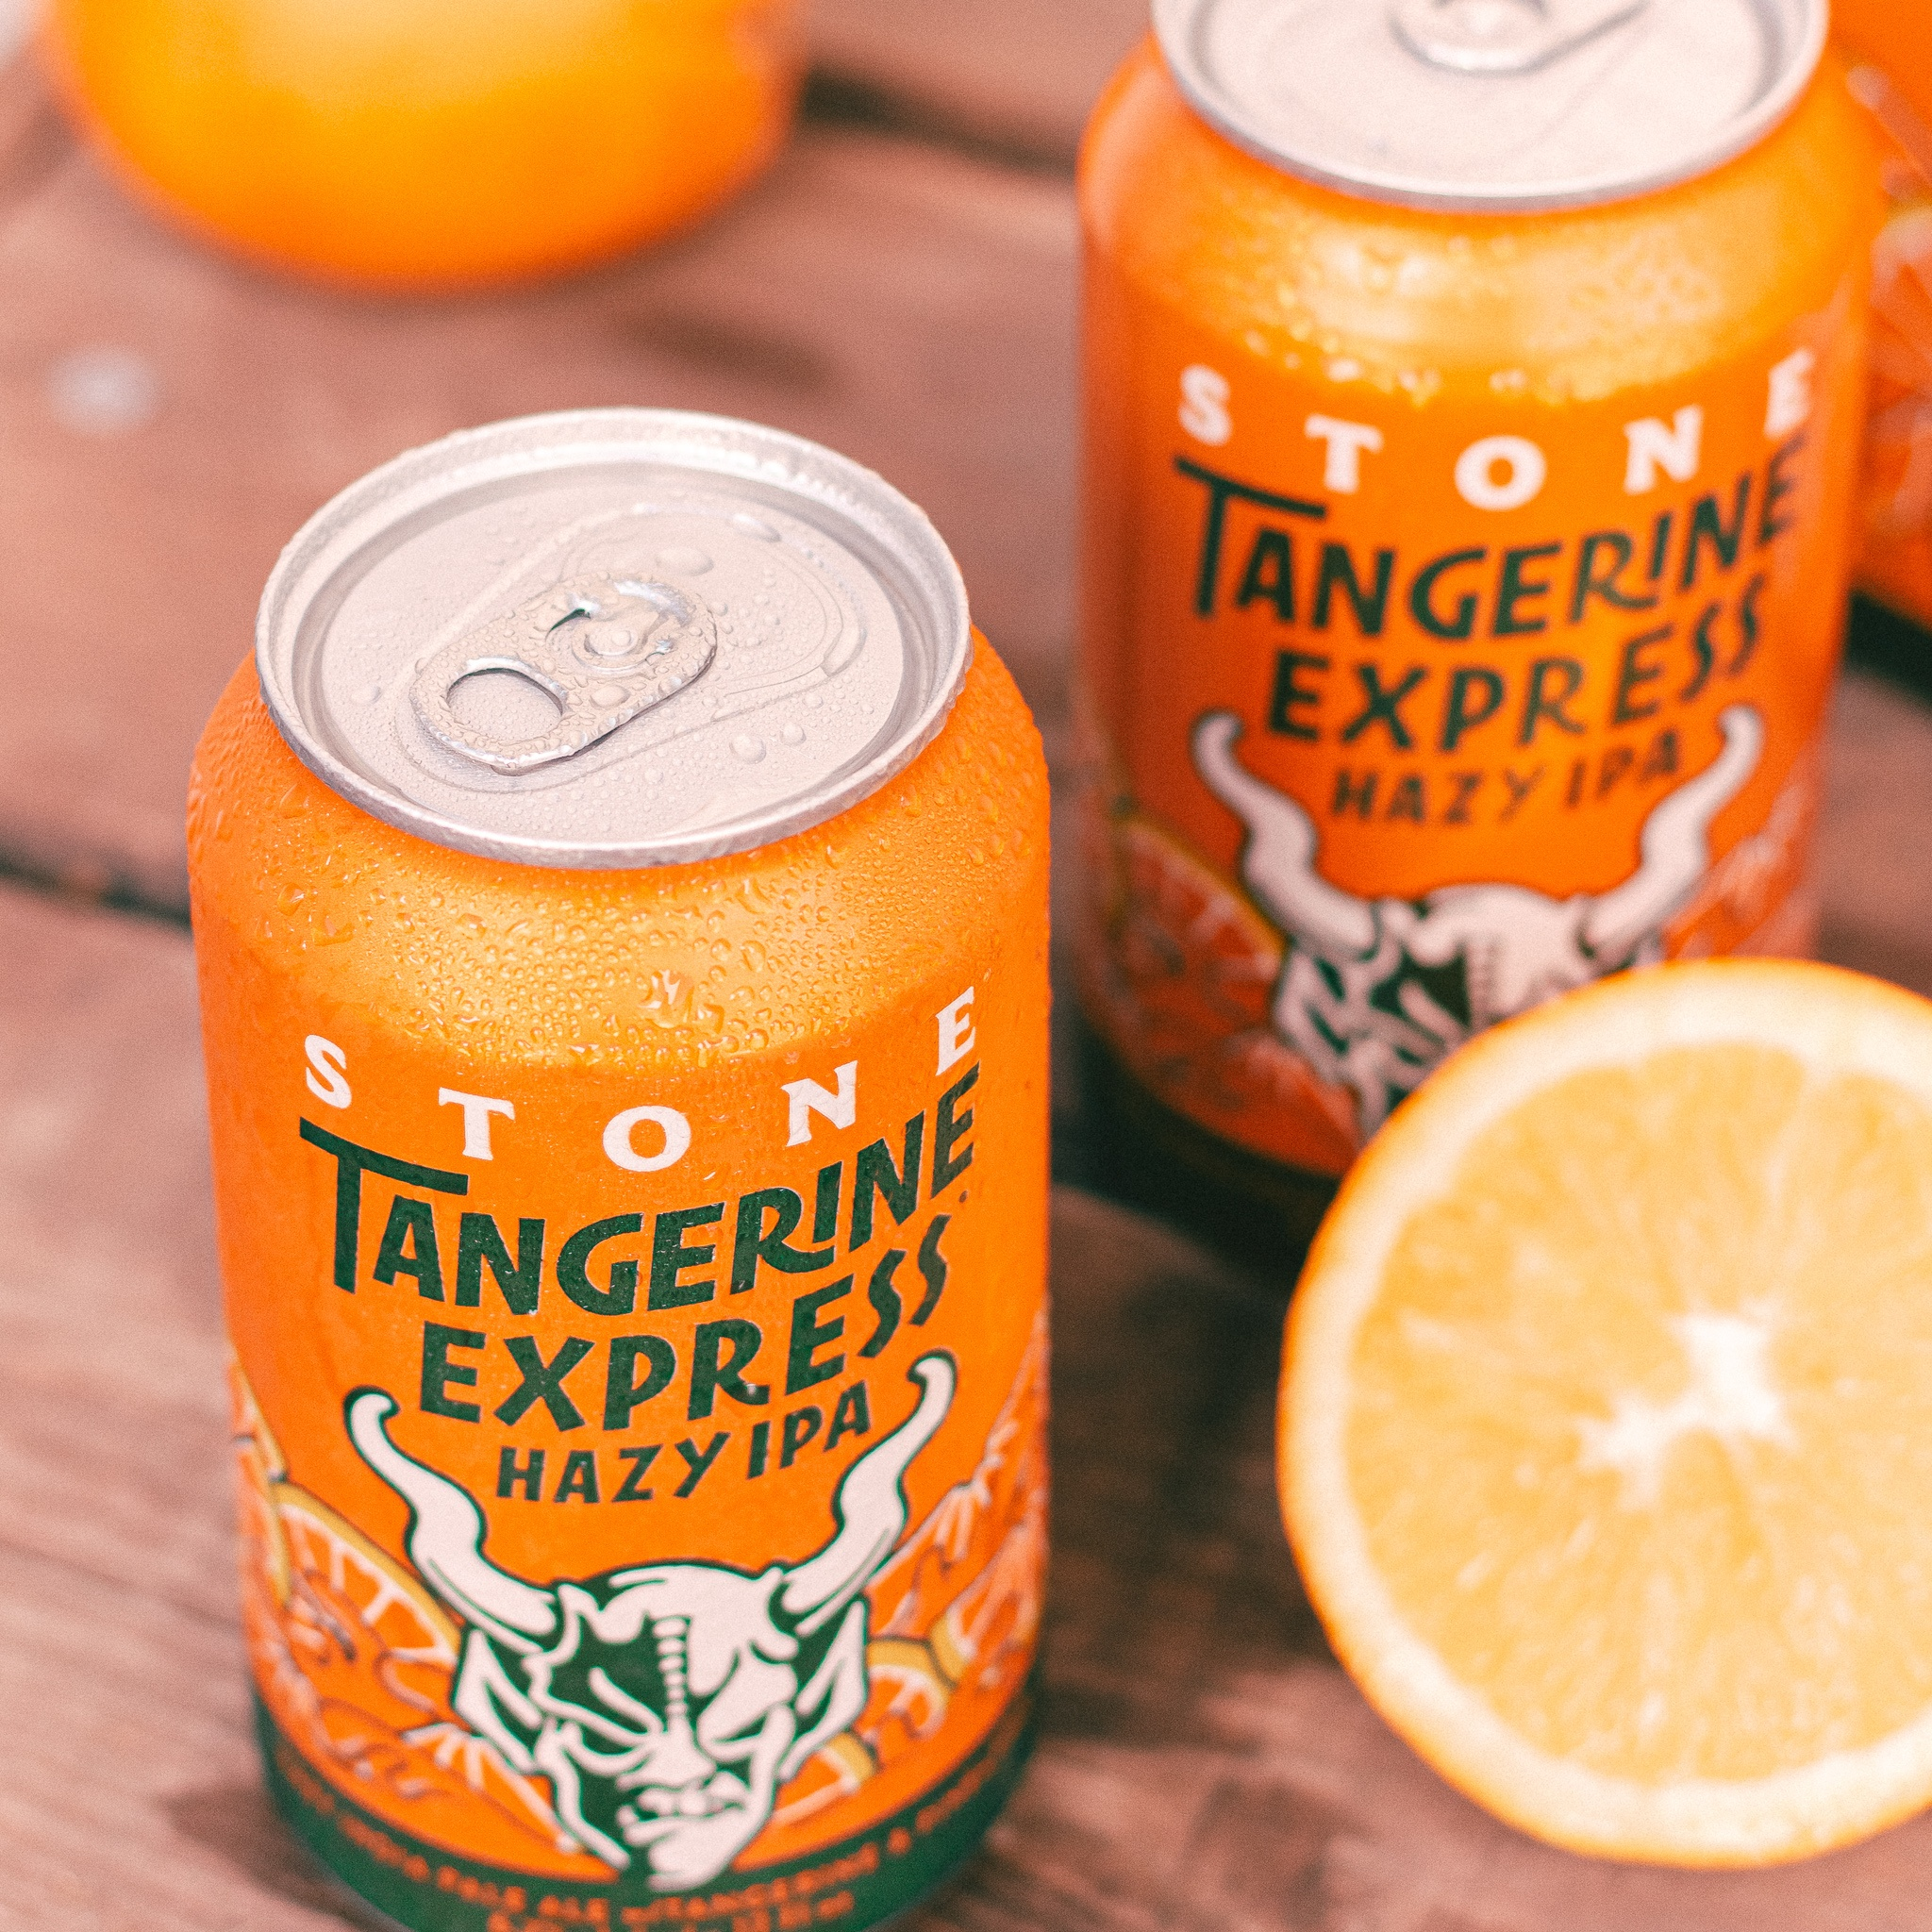 Stone Brewing Changes Nothing About Stone Tangerine Express Hazy IPA